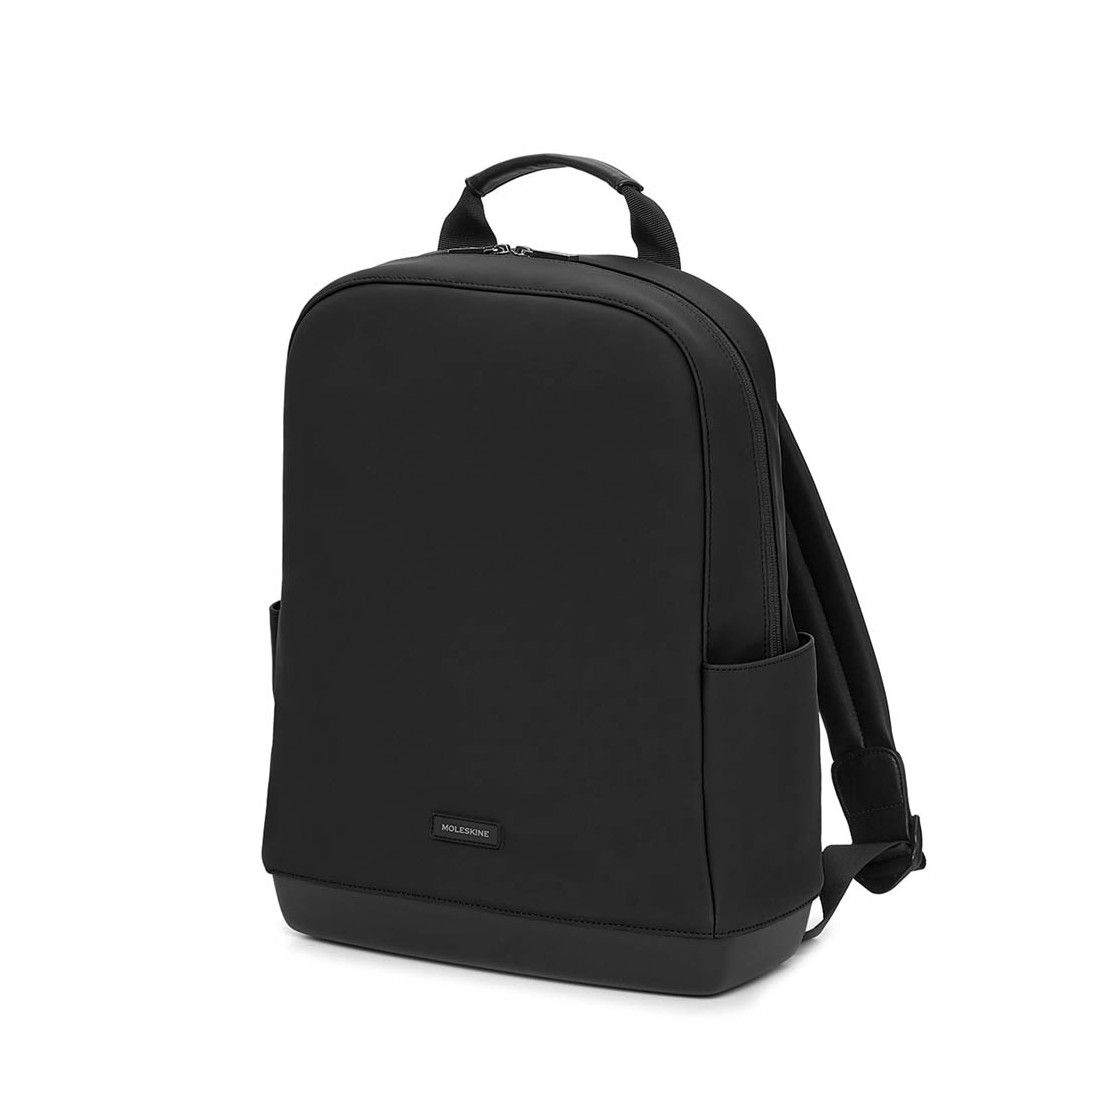 Mochila The Backpack - Pu Negro Suave...